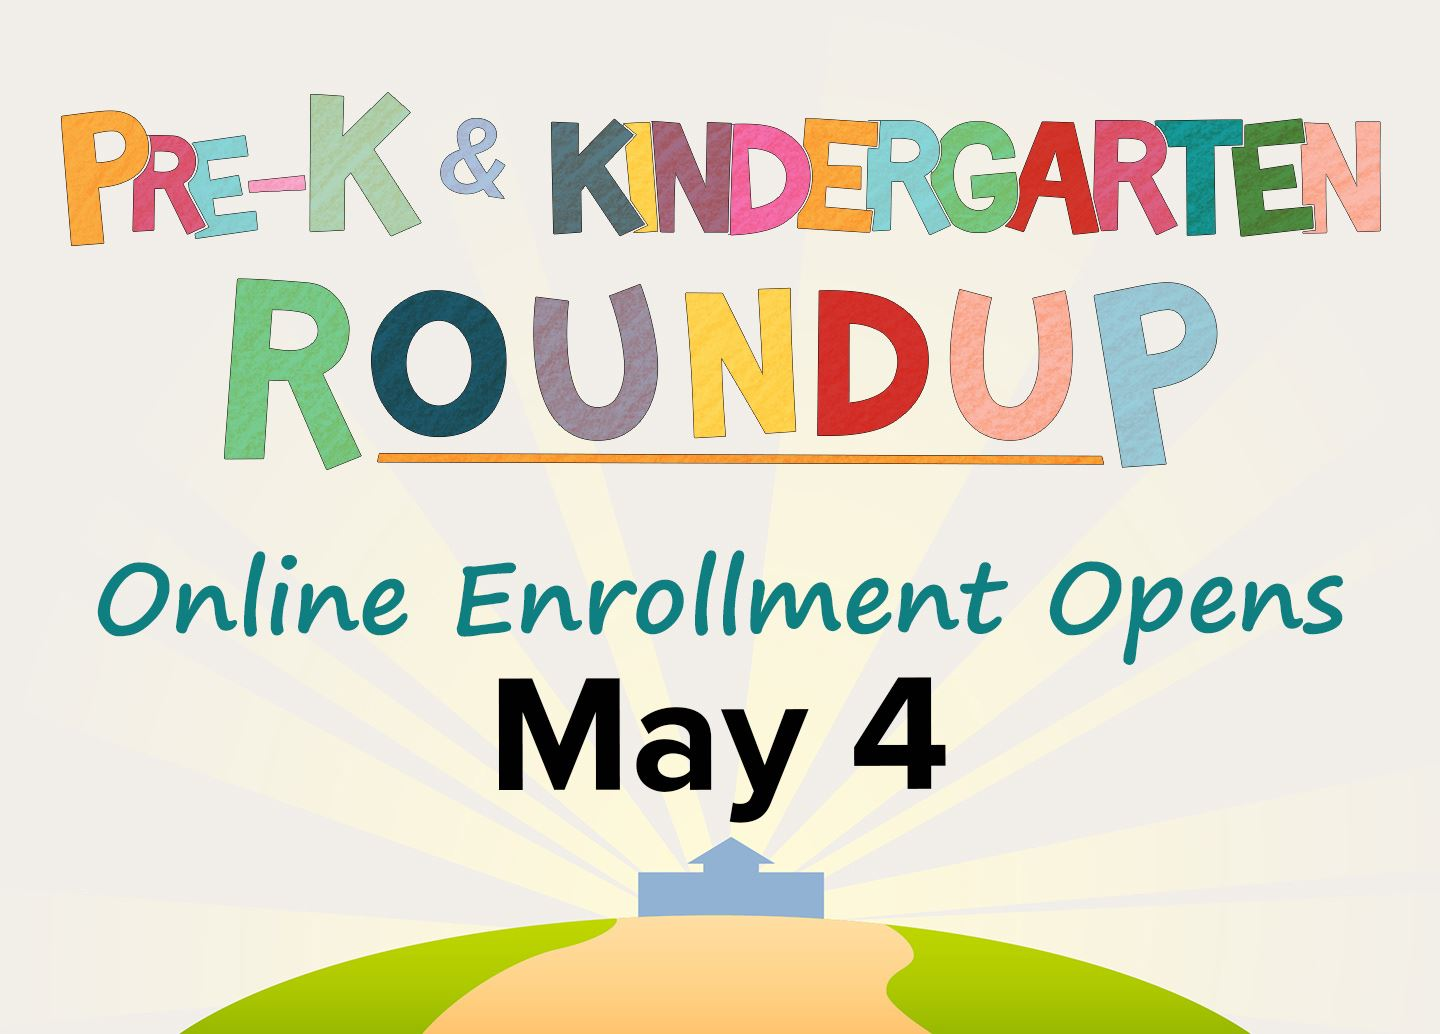 Pre-K and Kindergarten Roundup: online enrollment opens May 4